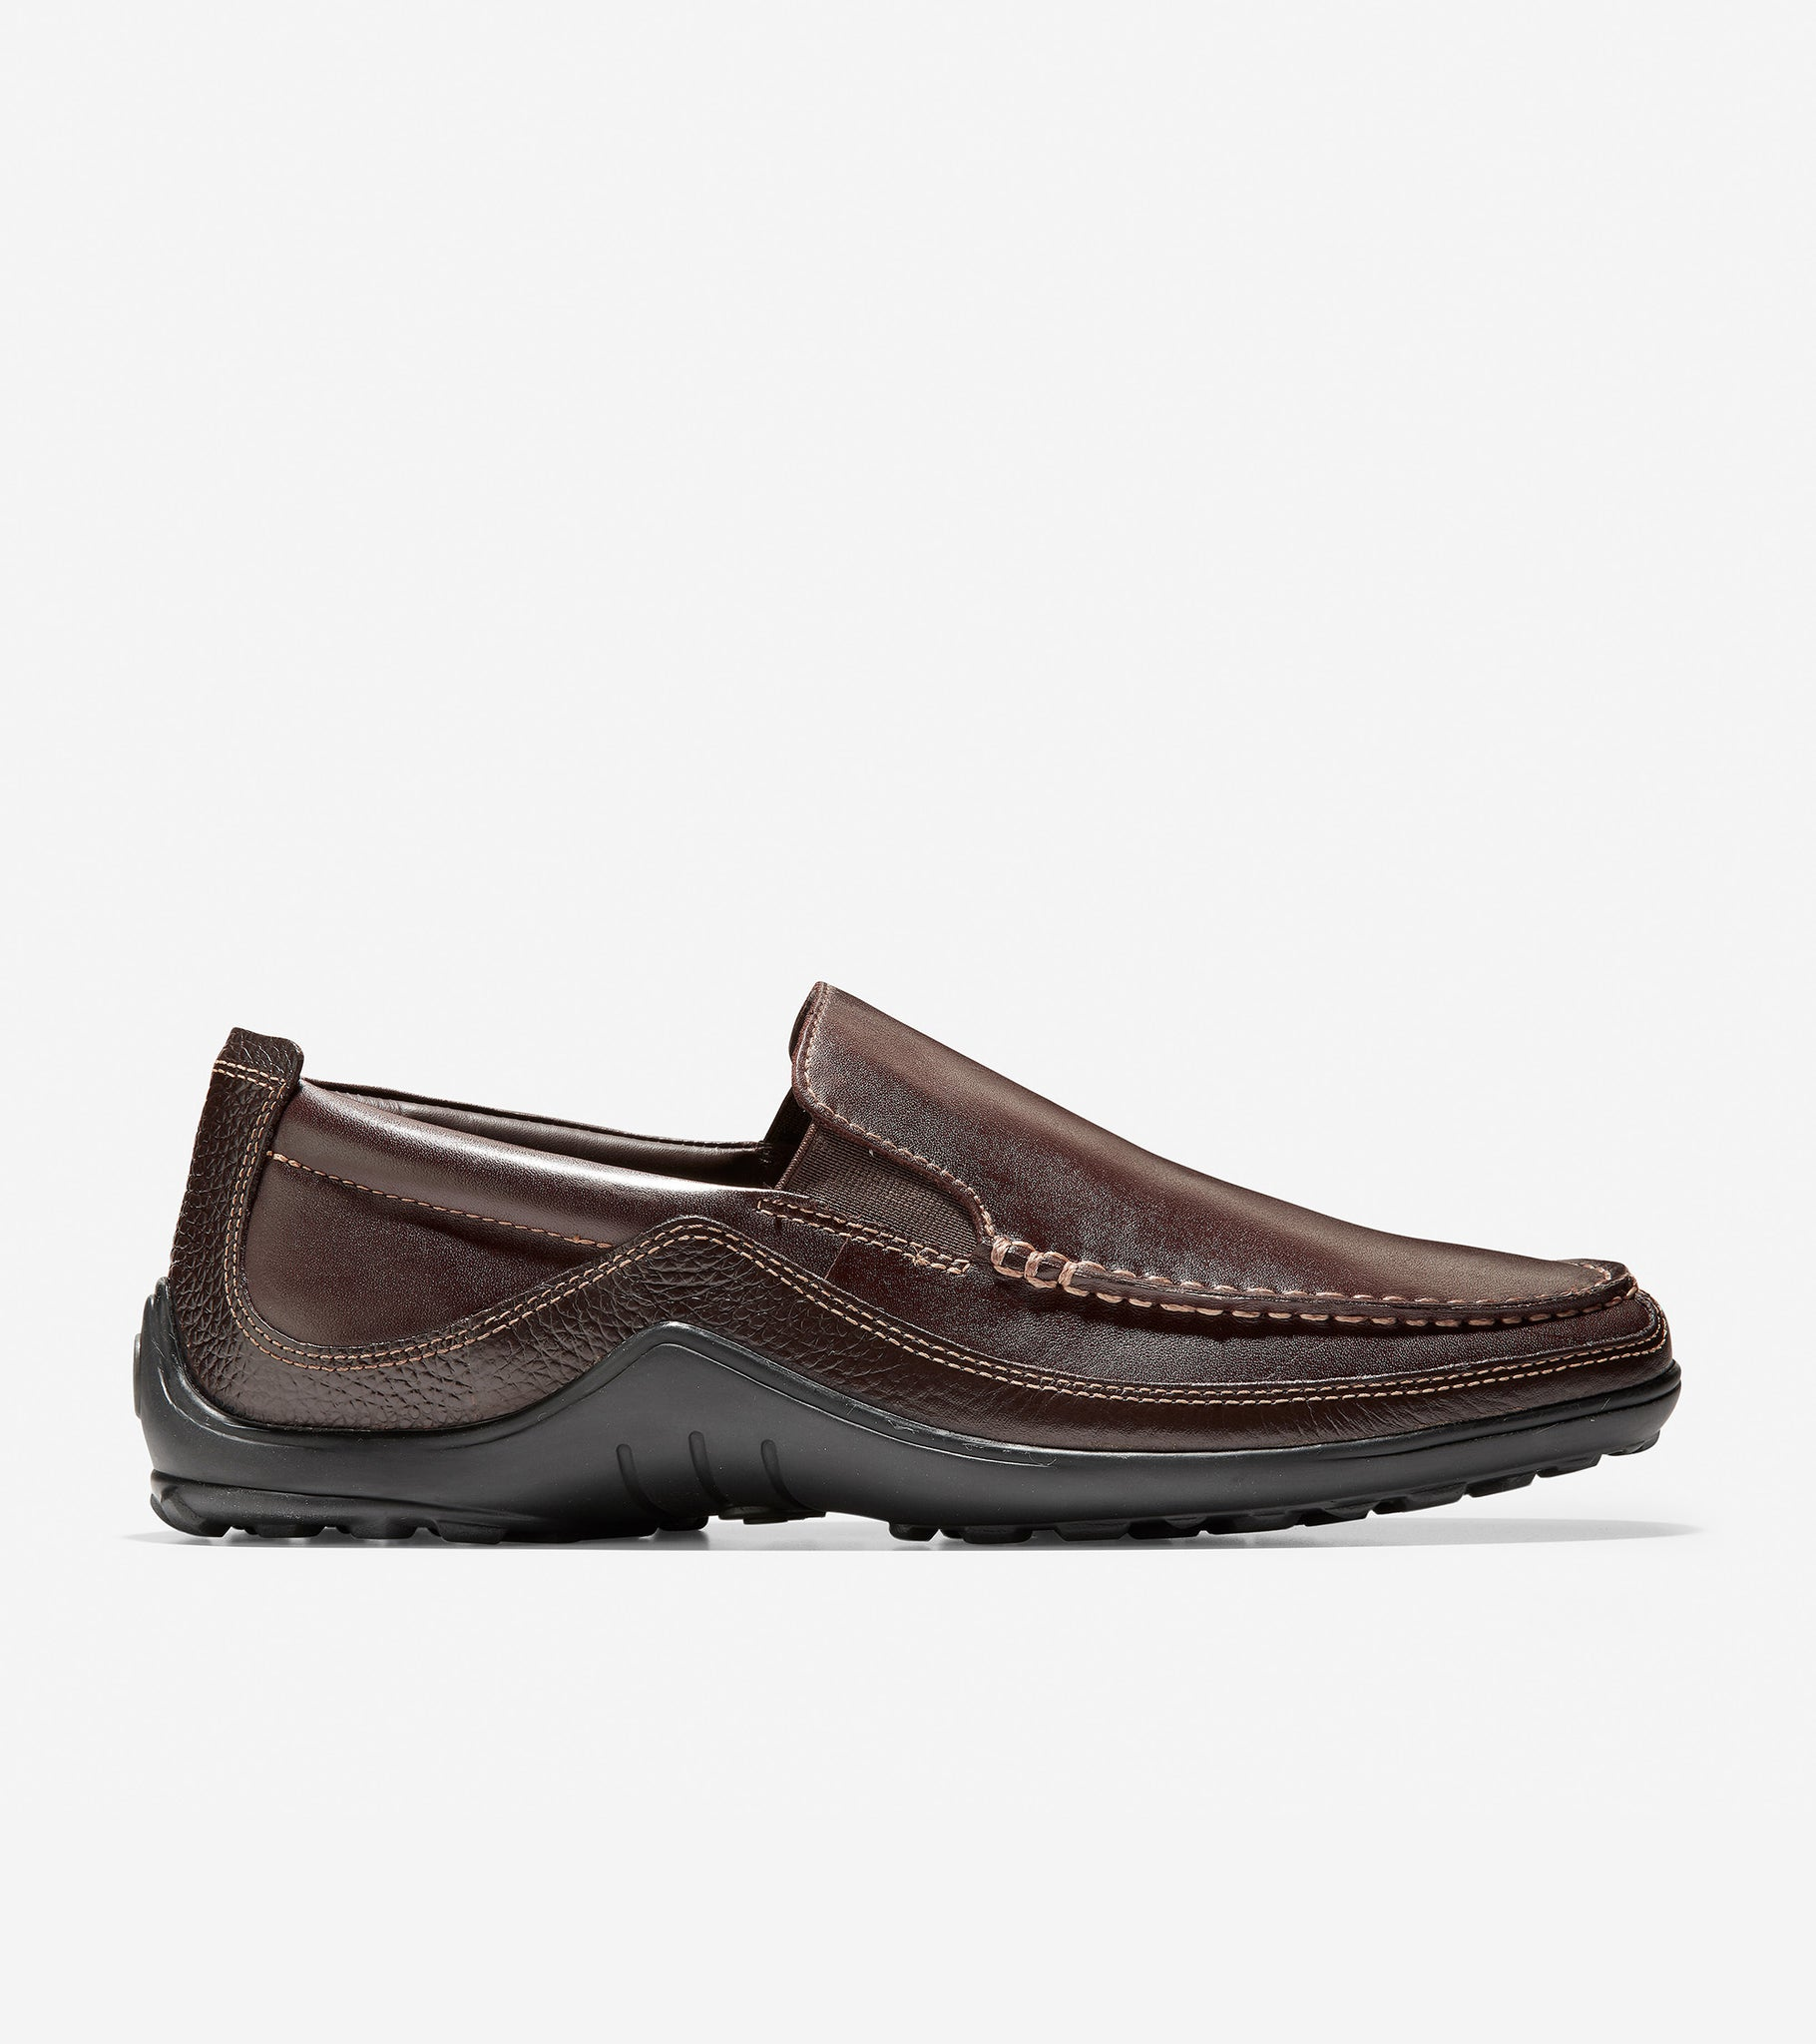 COLE HAAN MEN'S TUCKER VENETIAN